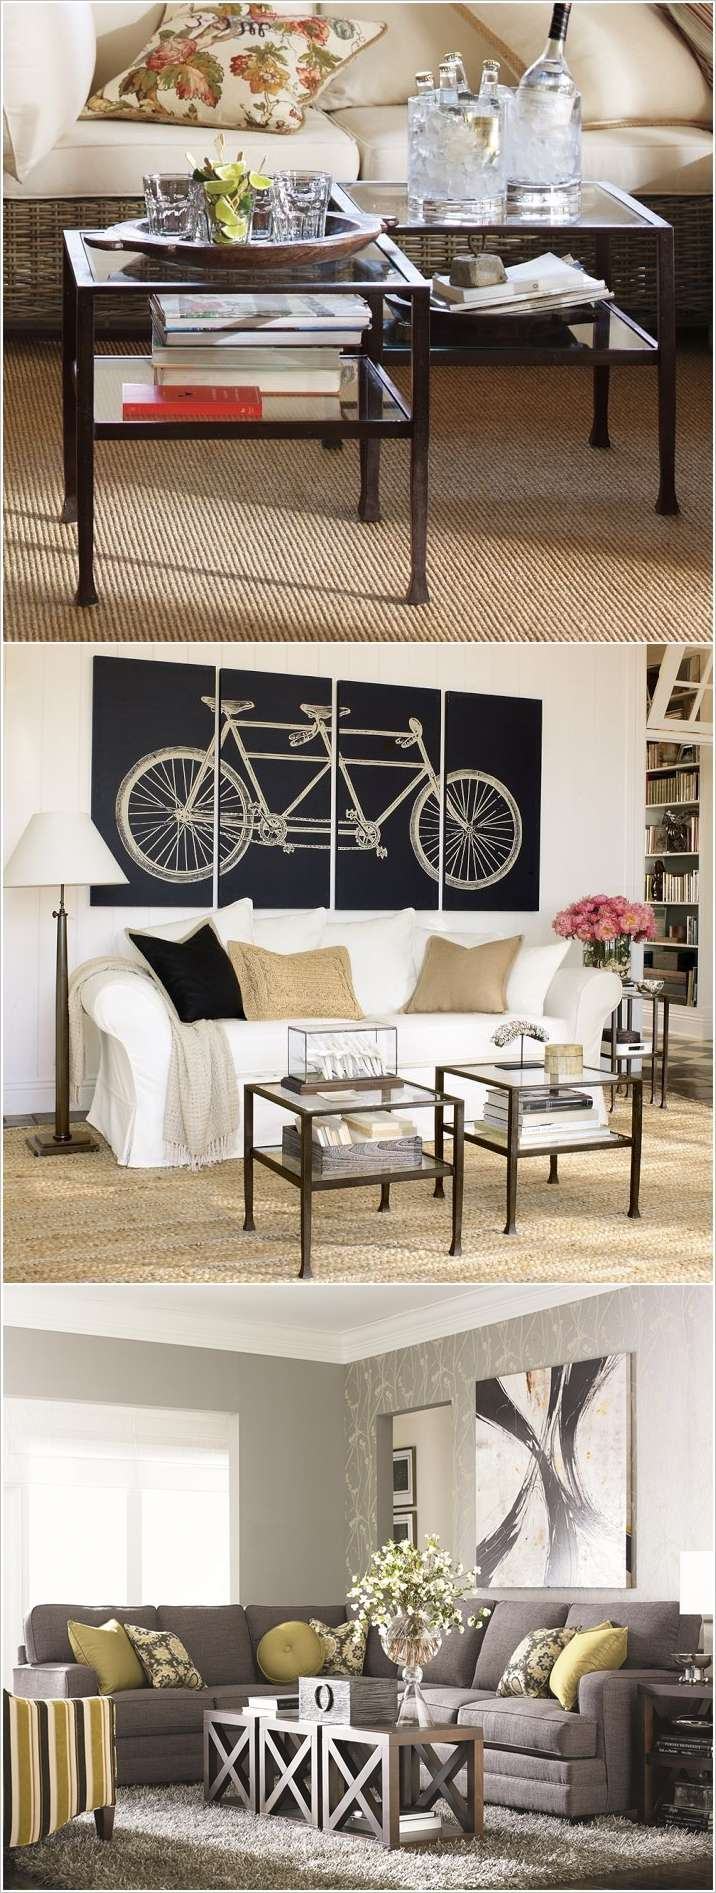 13 Creative Coffee Table Alternatives For Your Living Room